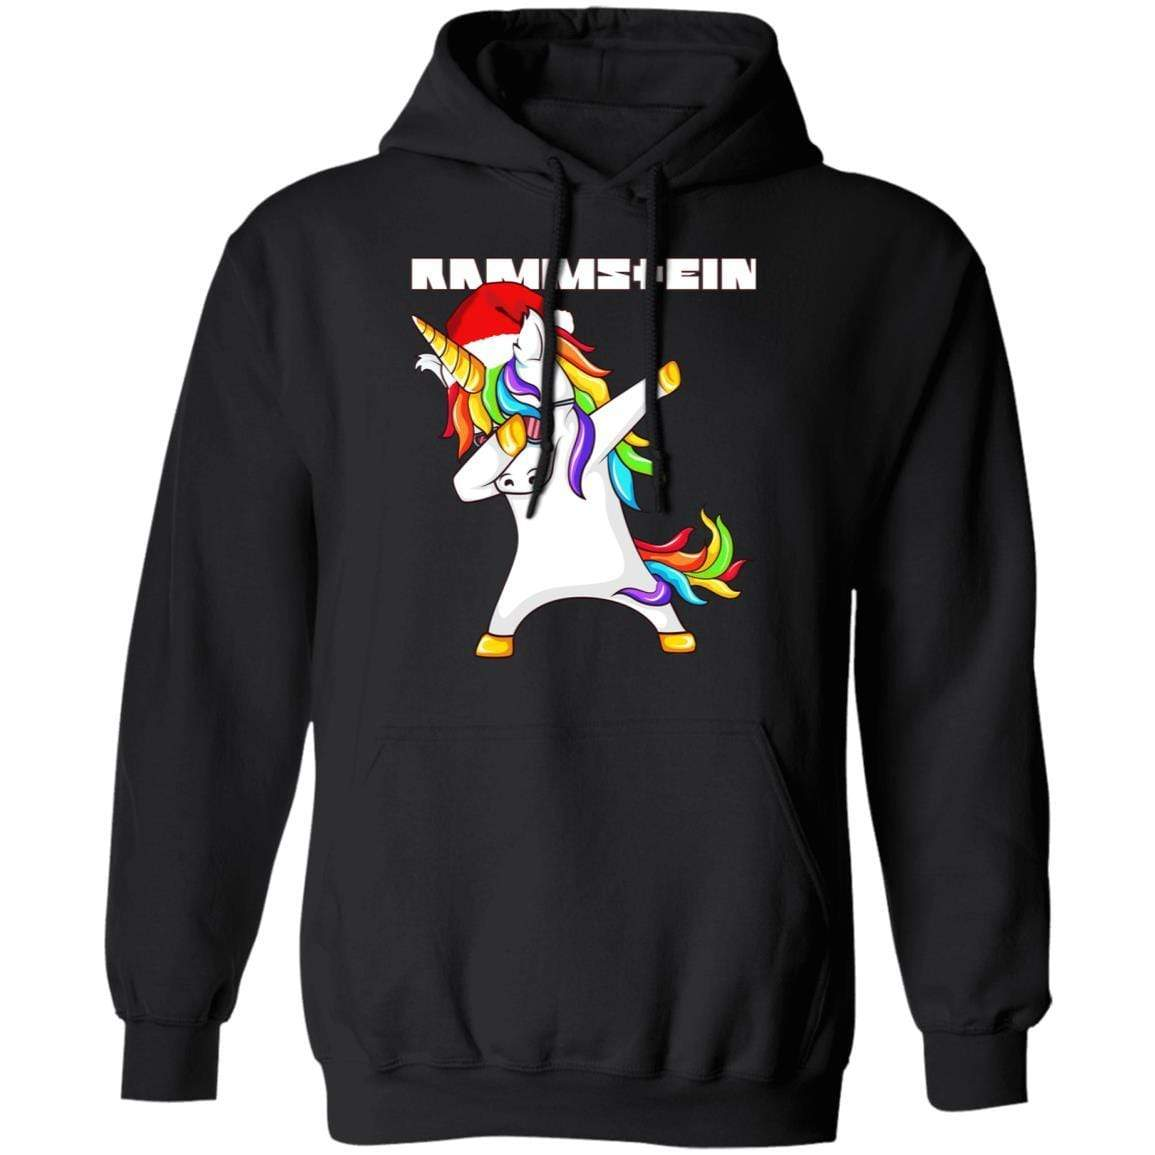 Rammstein Dabbing Unicorn Version T-Shirts, Hoodies 541-4740-88254695-23087 - Tee Ript